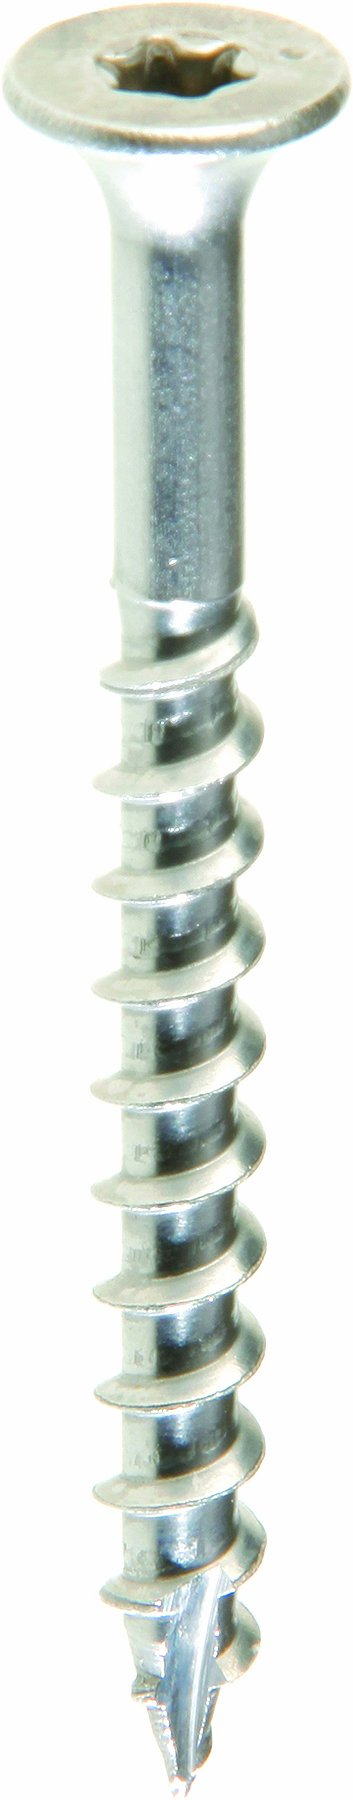 Grip Rite Prime Guard MAXS62714 Type 17 Point Deck Screw Number 10 by 3-Inch T25 Star Drive, Stainless Steel, 5-Pound Tub by Grip Rite Prime Guard